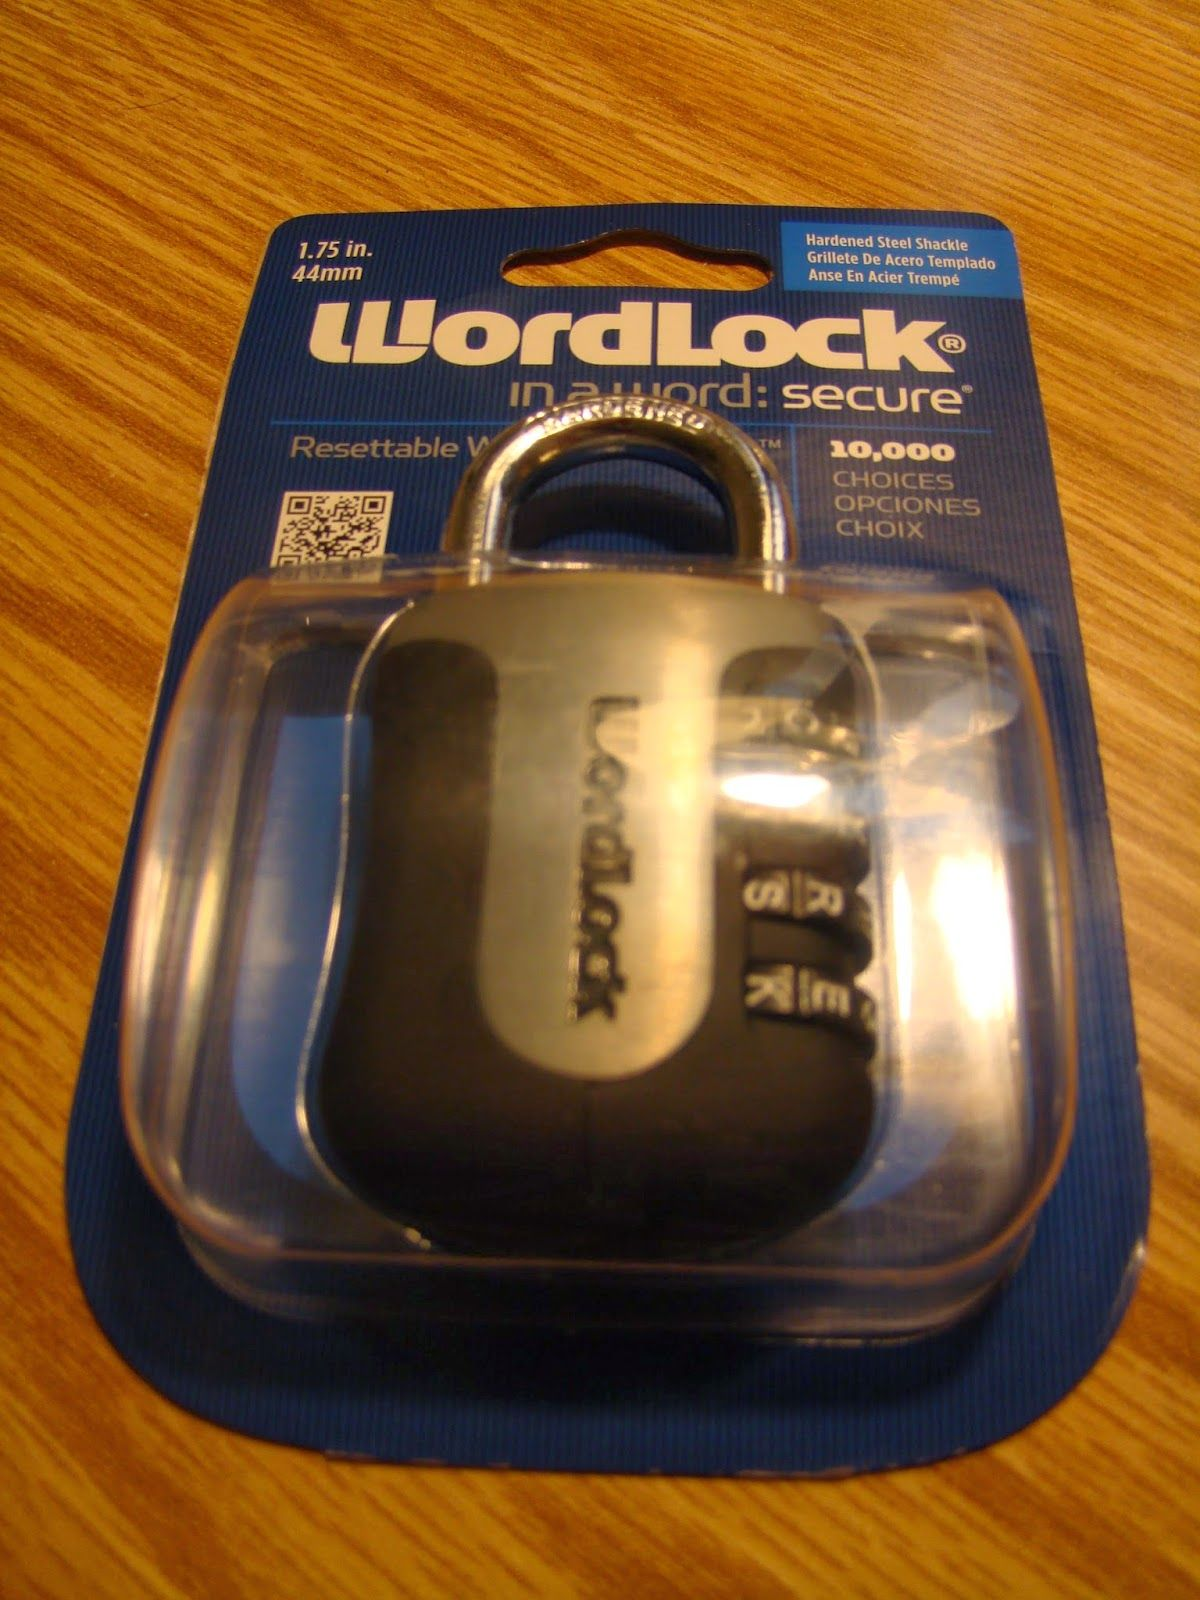 Win a FREE WordLock. Low entries so your chances are high!